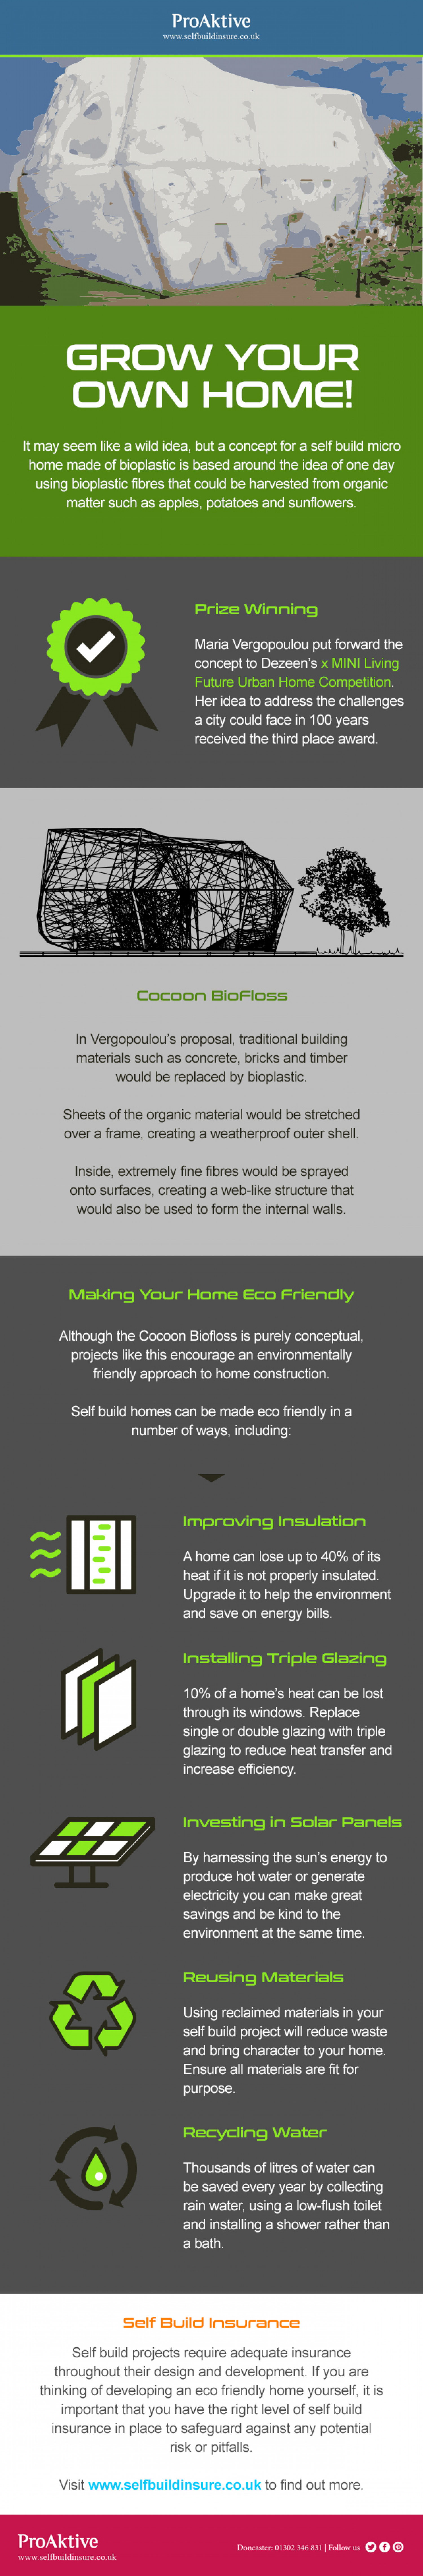 Grow Your Own Home Infographic